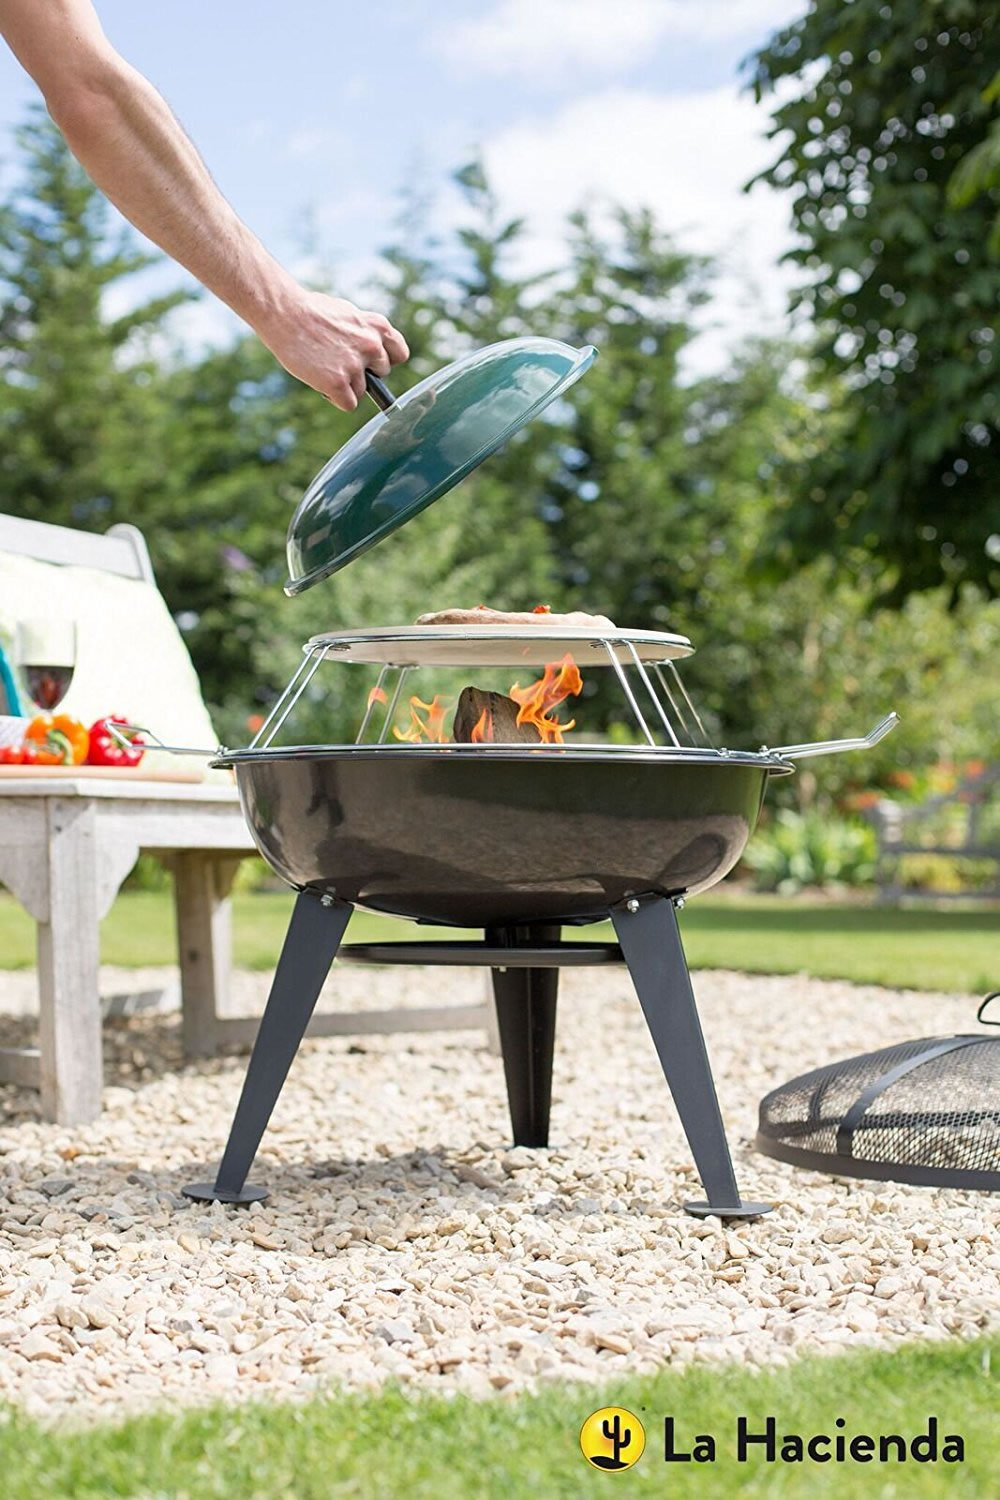 La hacienda pizza firepit garden4less uk shop for Gardening 4 less reviews